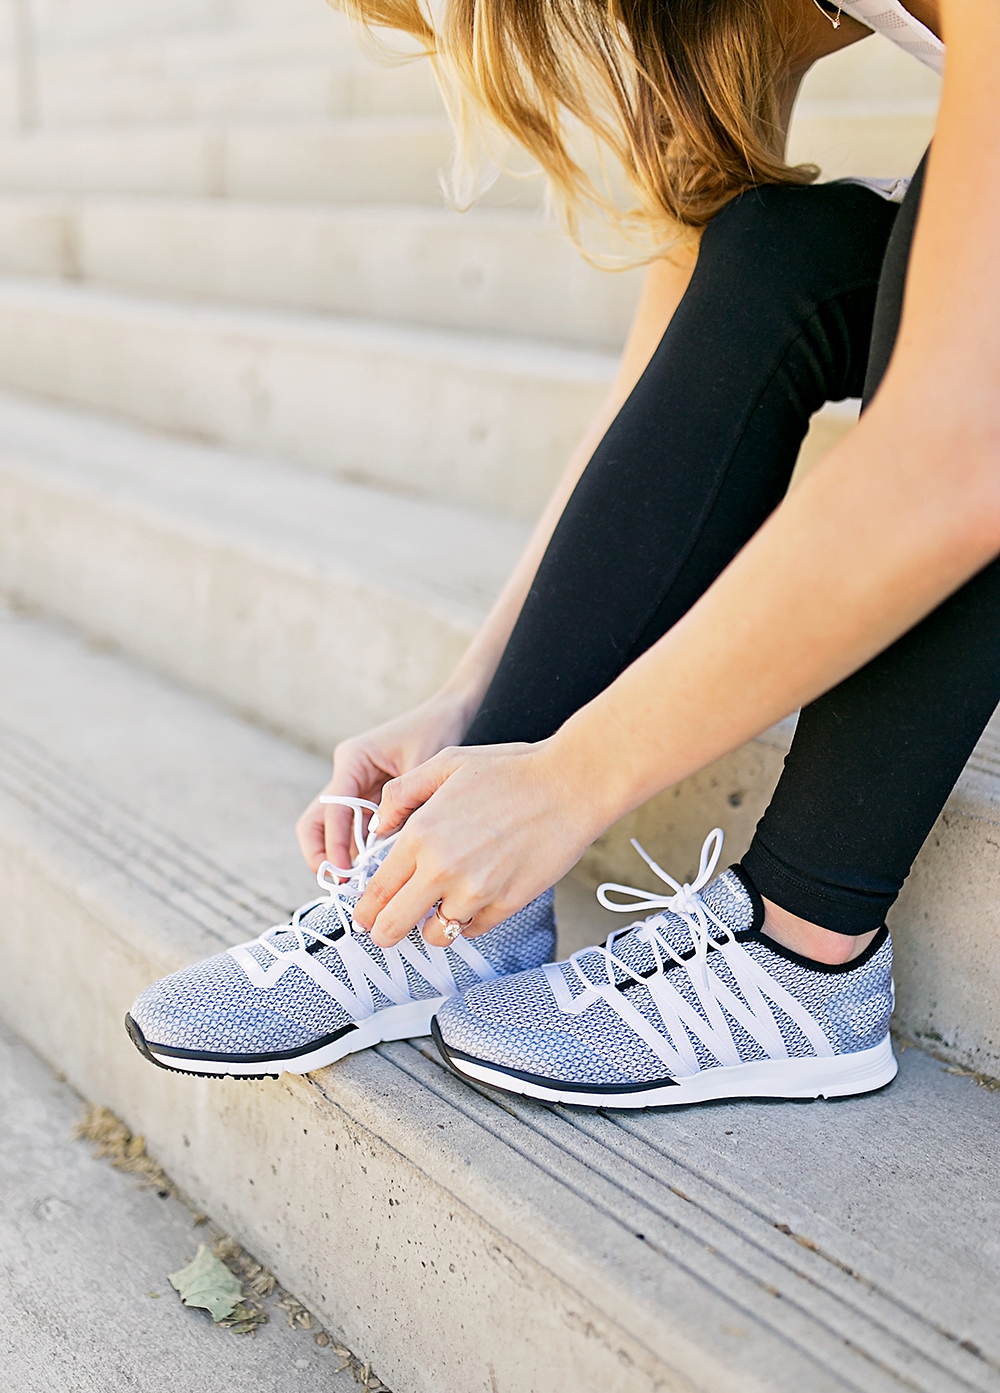 Everyday Workout Gear Under Armour Running Shoes Livvyland 12 Jeans Girl Blog Olivia Watson